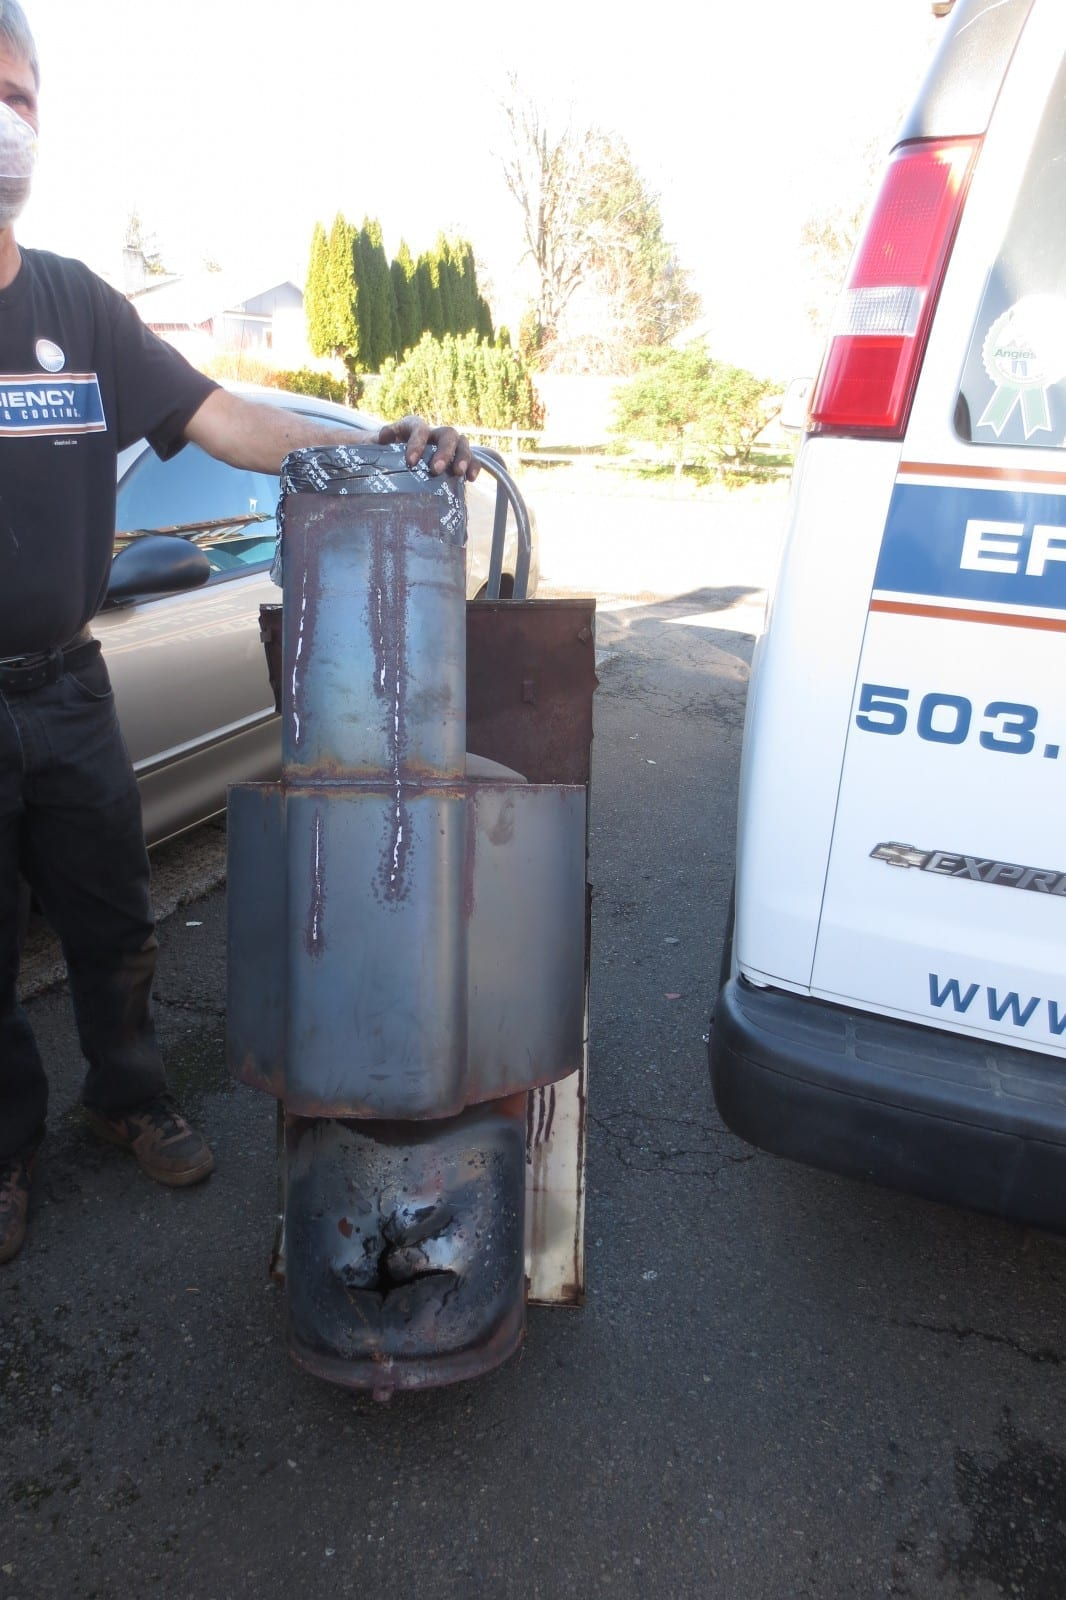 found cracked heat exchanger from an oil furnace in se portland